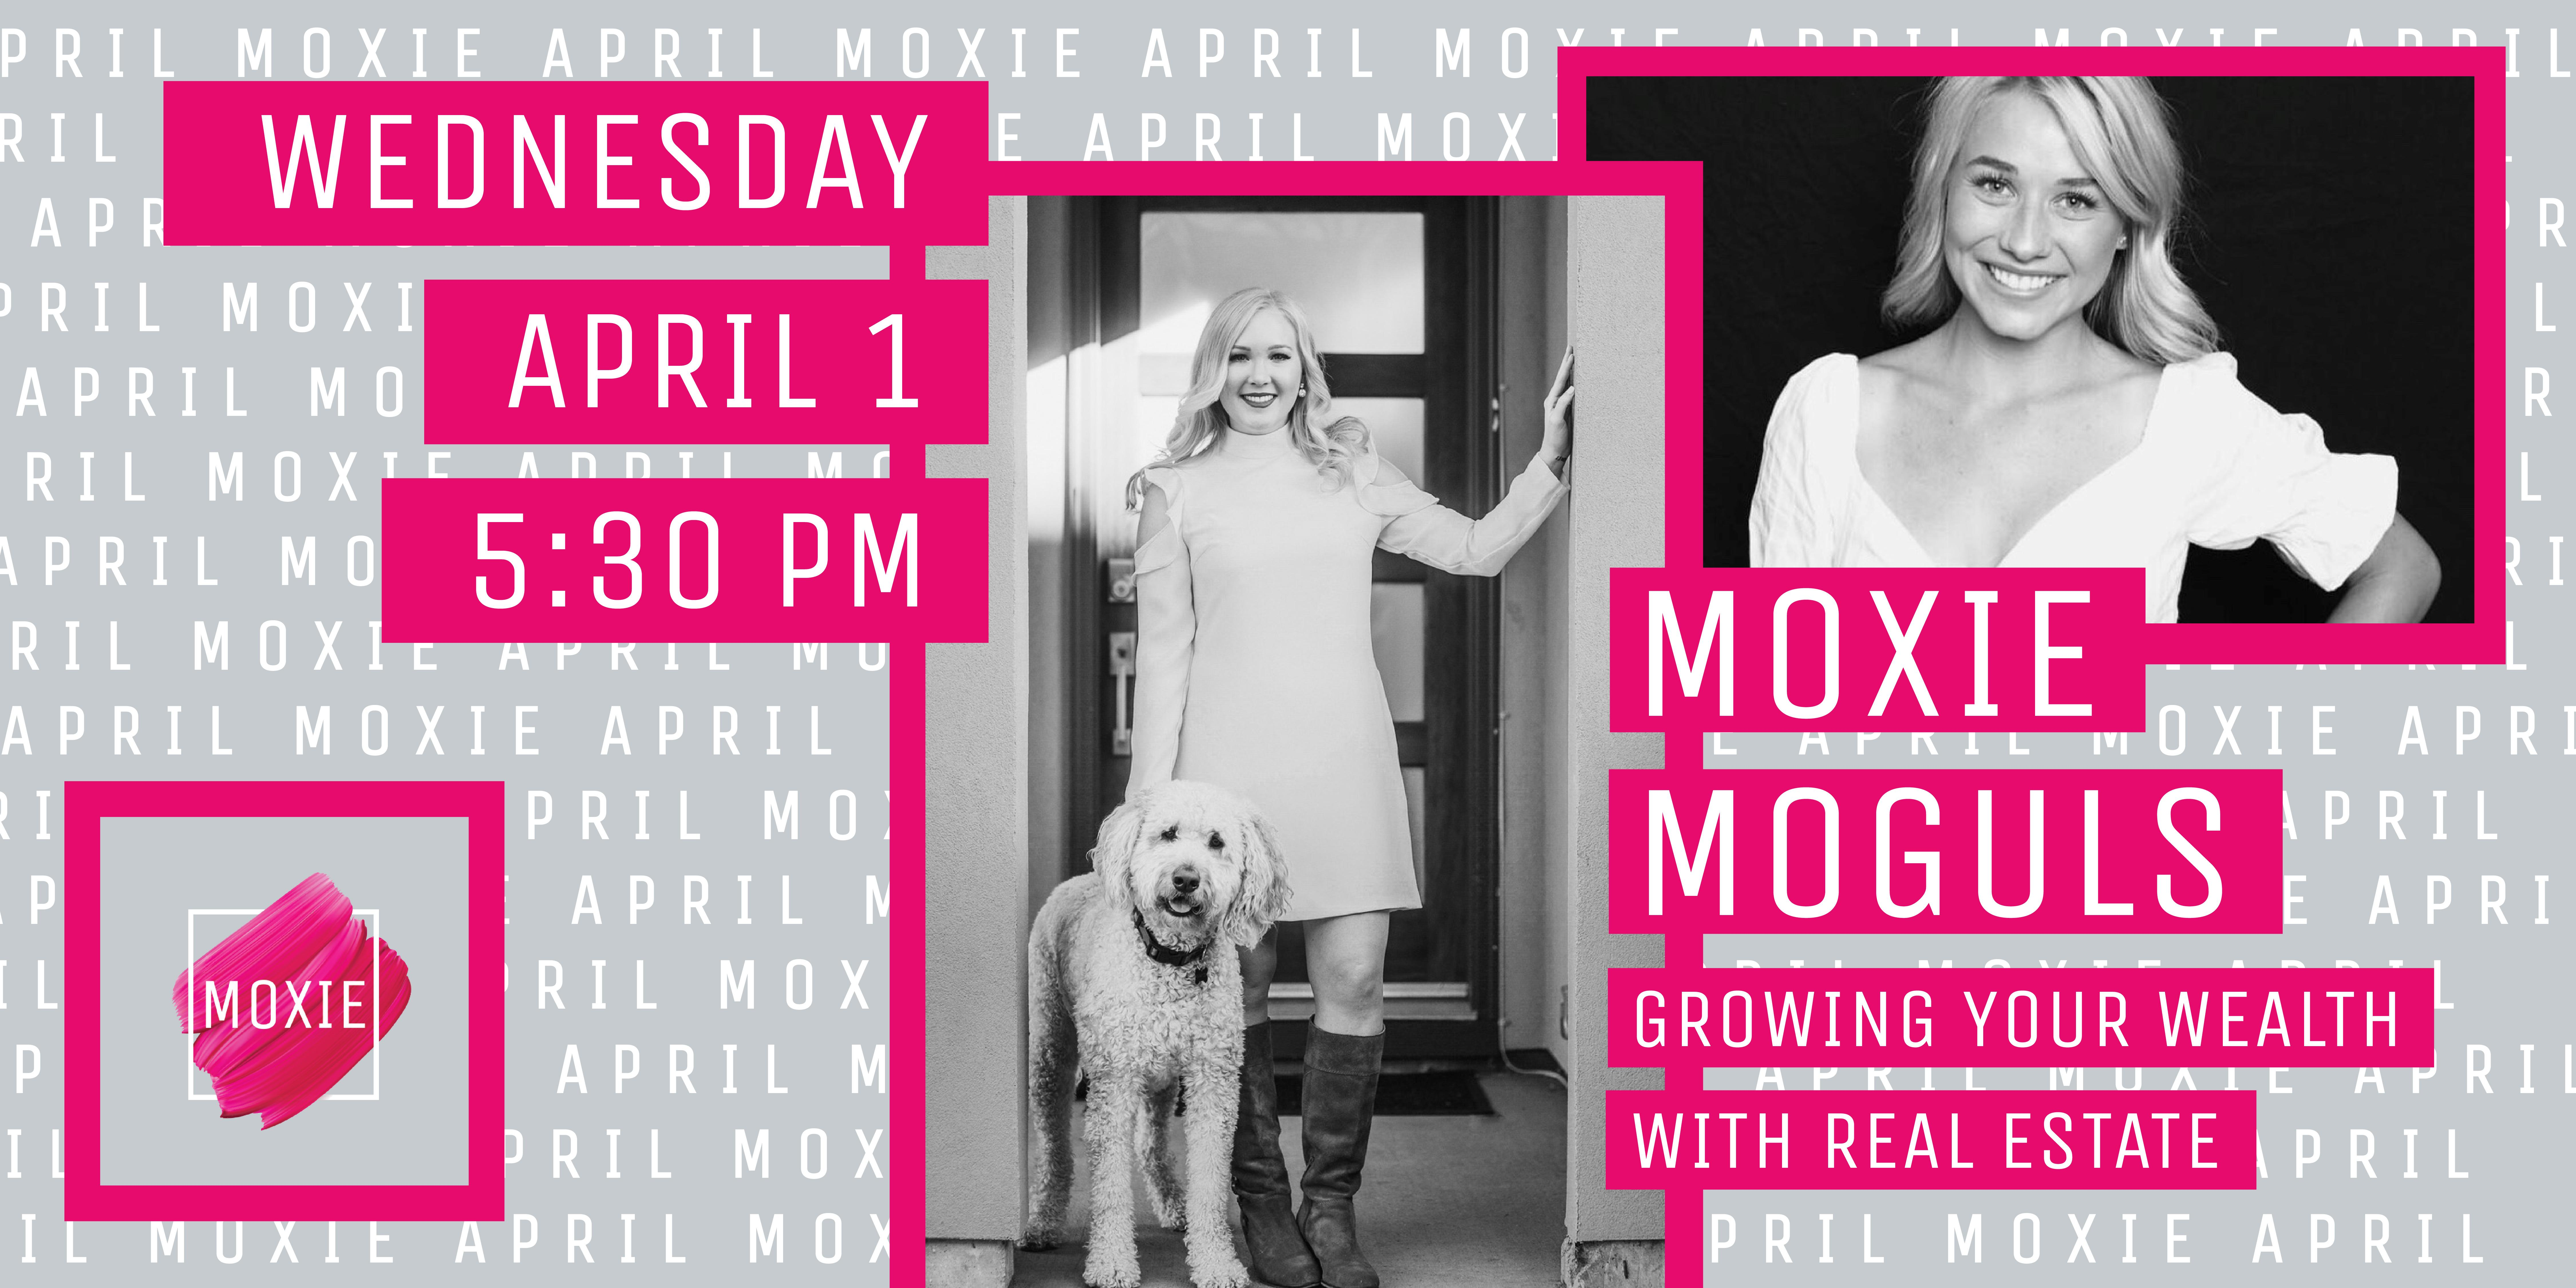 MOXIE MOGULS: Growing Your Wealth with Real Estate